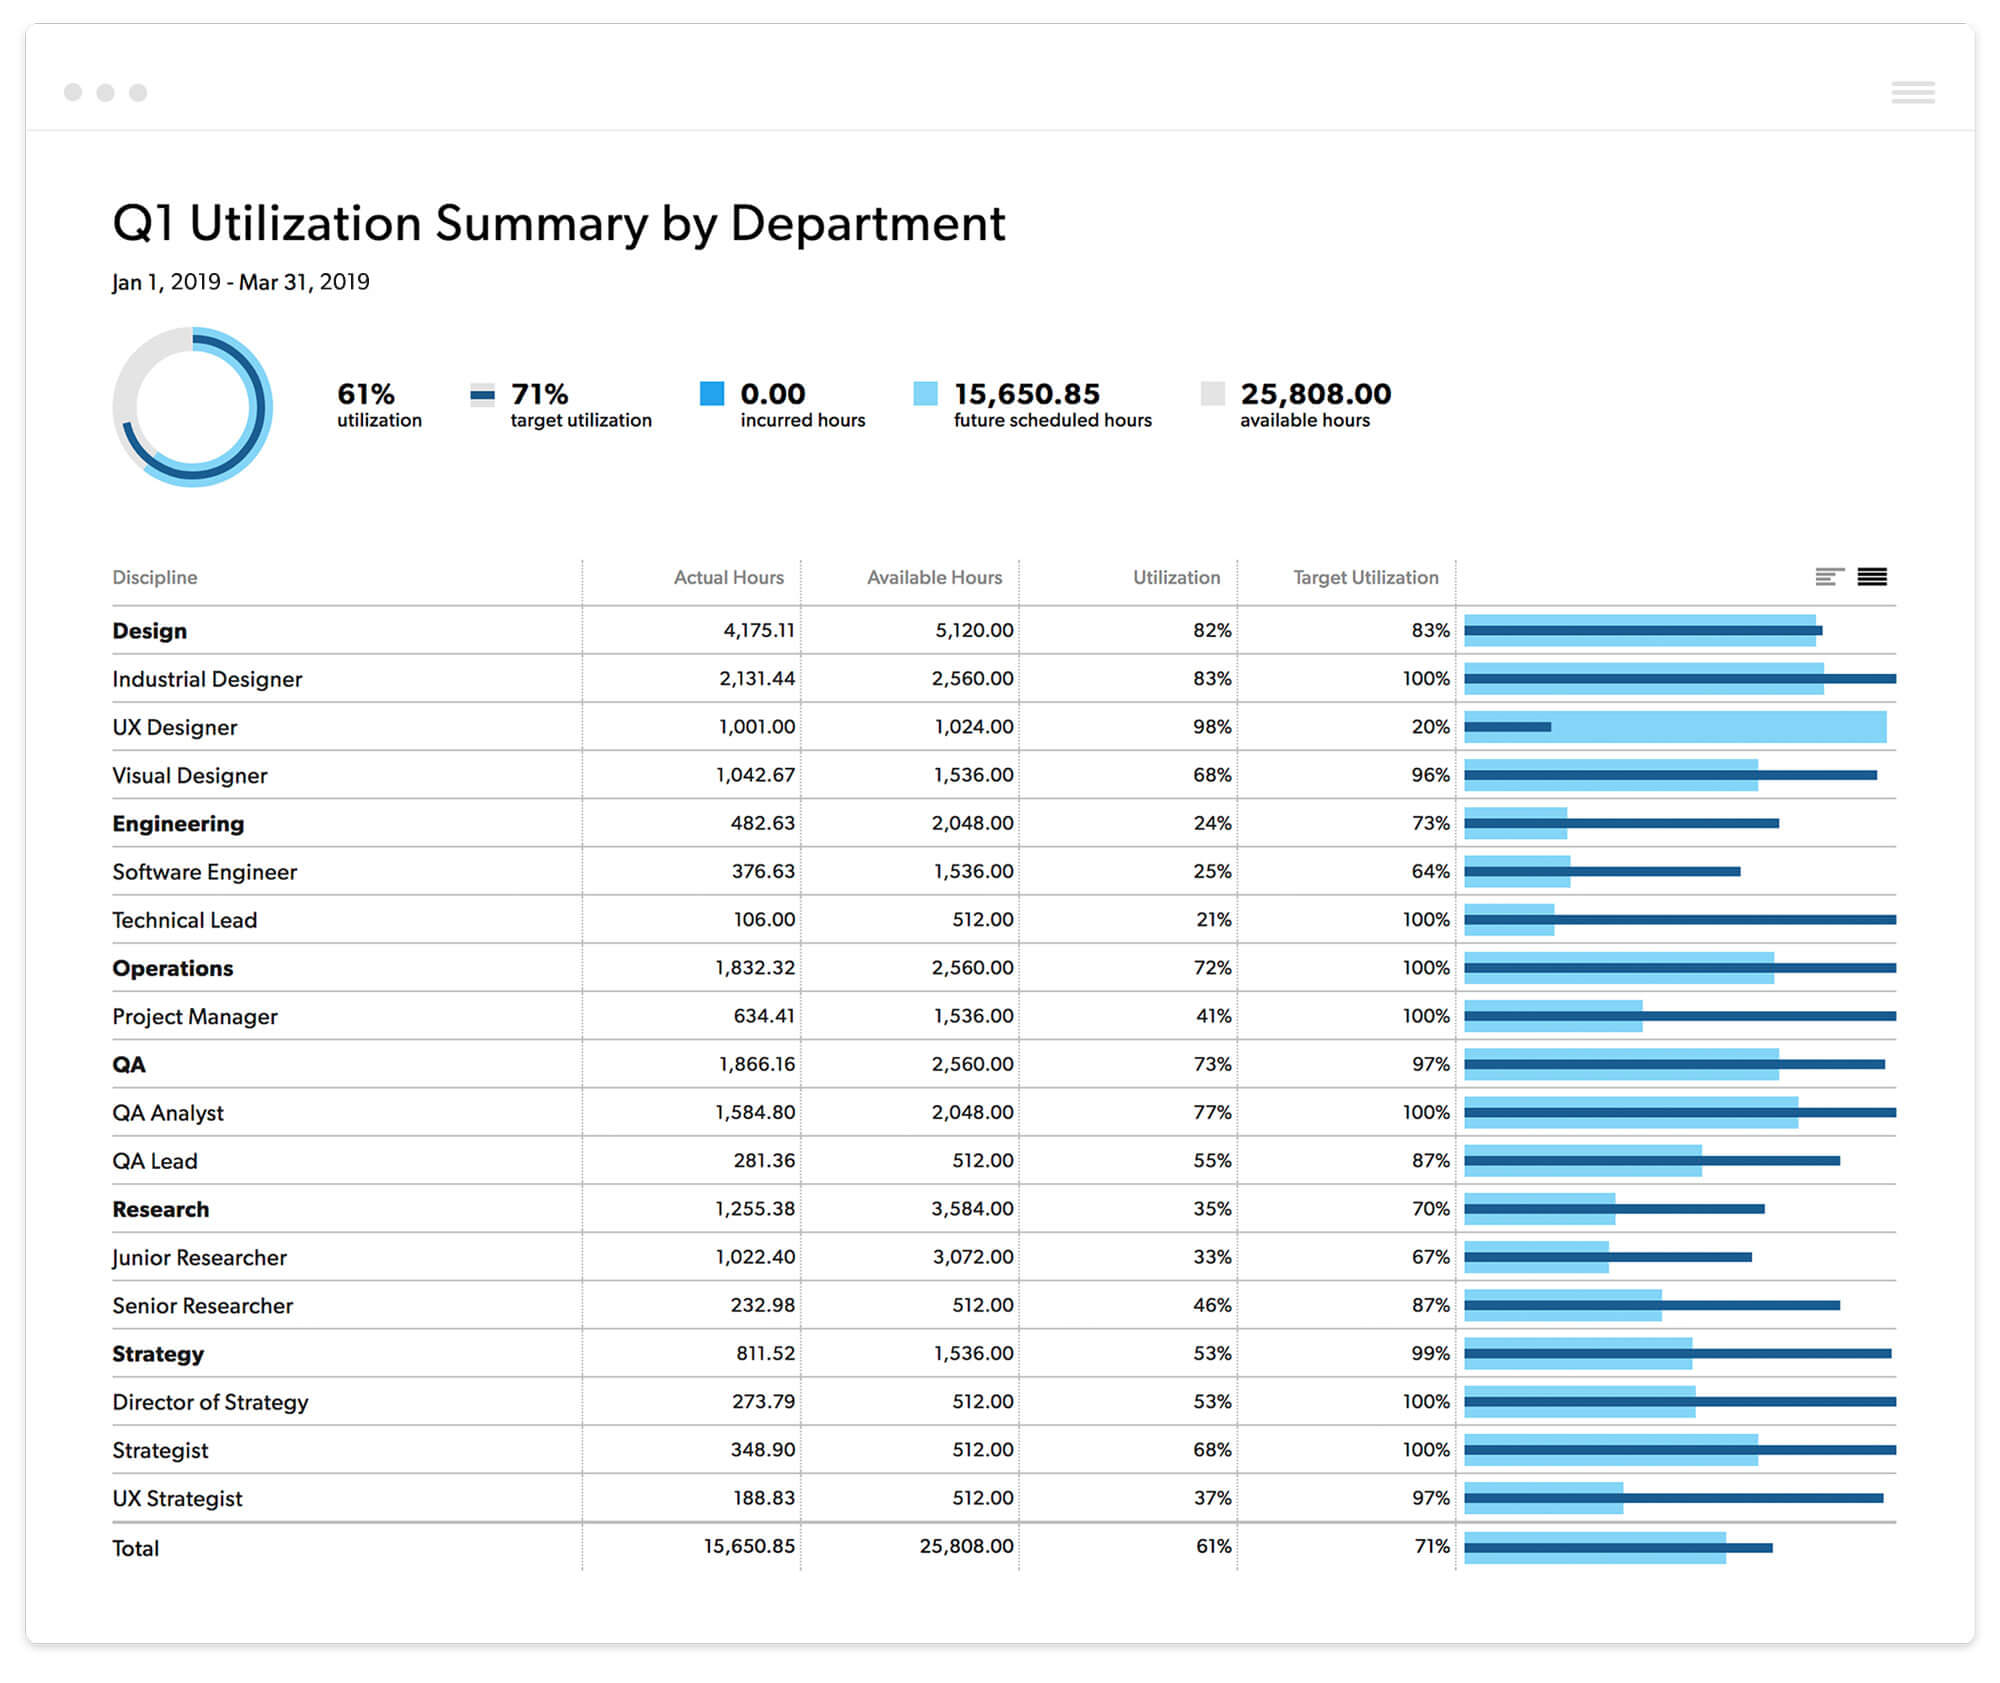 End of Year Report Utilization by Department